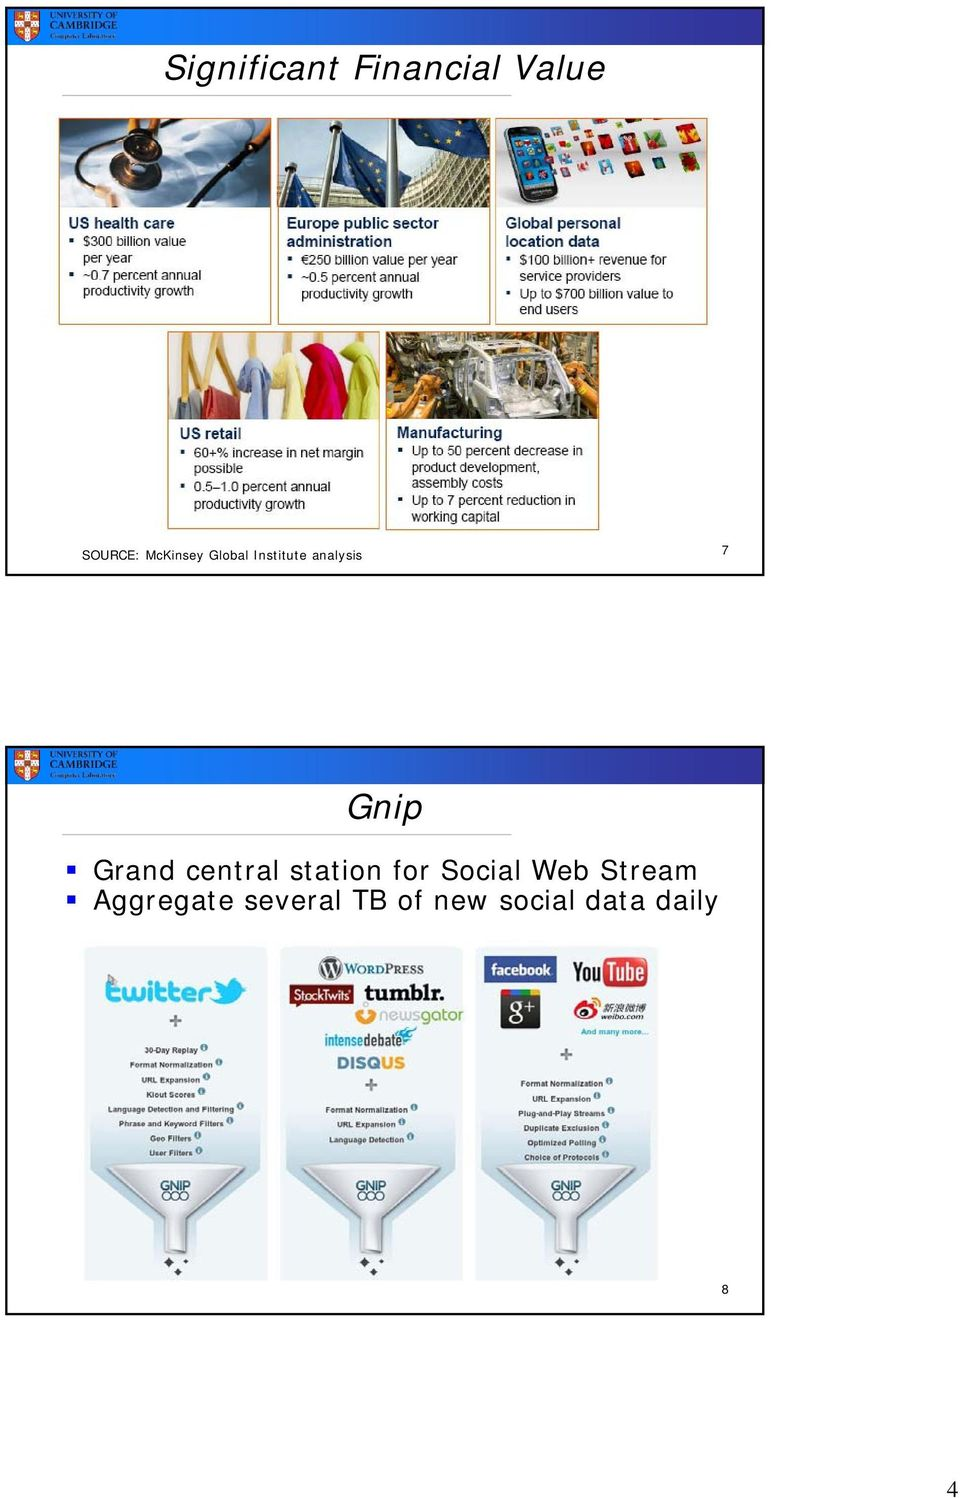 Grand central station for Social Web